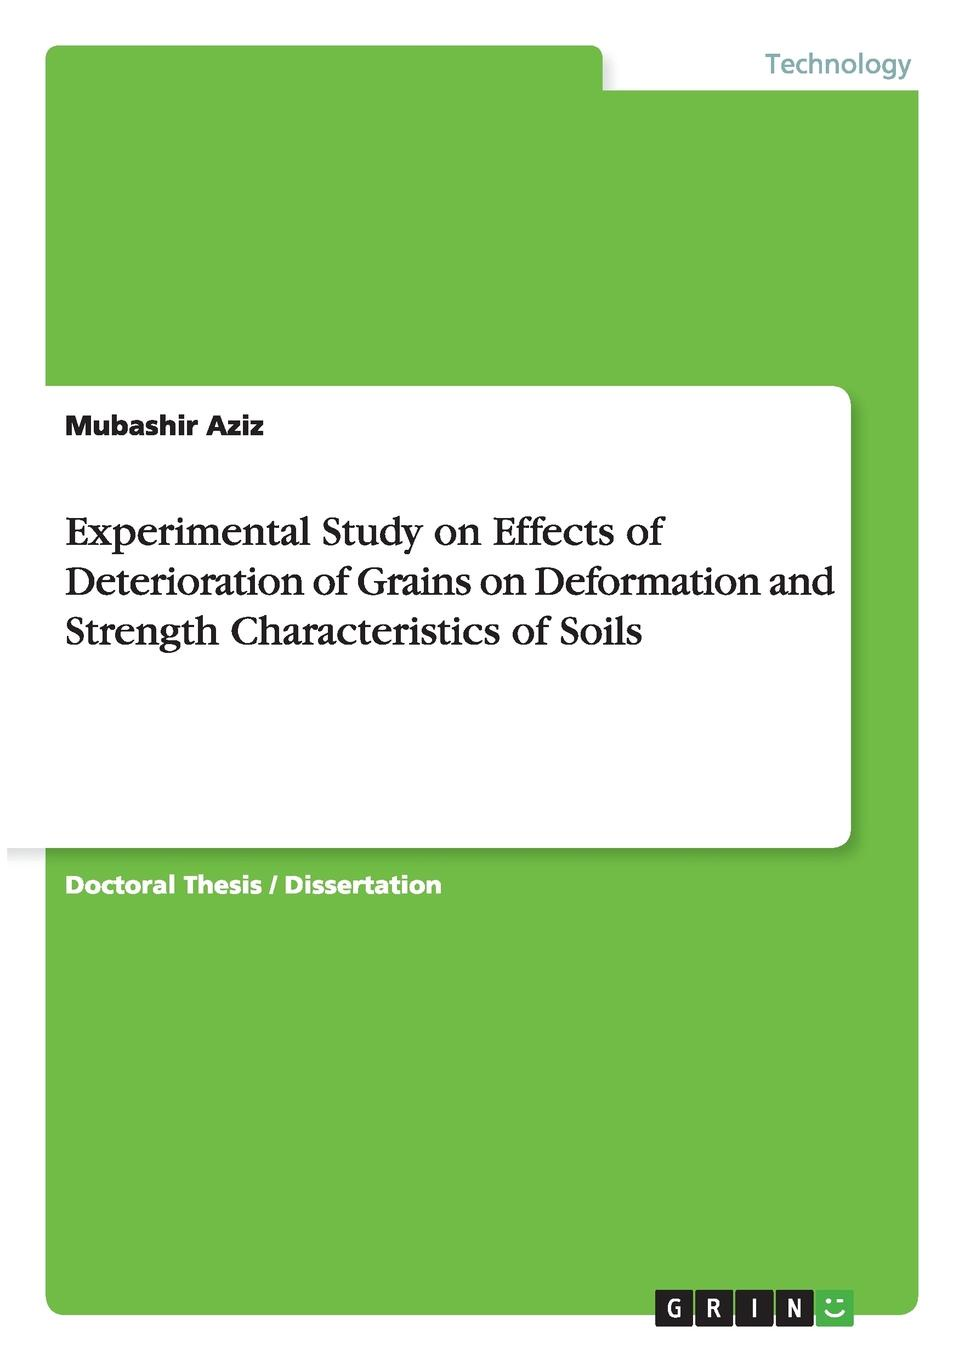 Mubashir Aziz Experimental Study on Effects of Deterioration of Grains on Deformation and Strength Characteristics of Soils laurence wesley d geotechnical engineering in residual soils